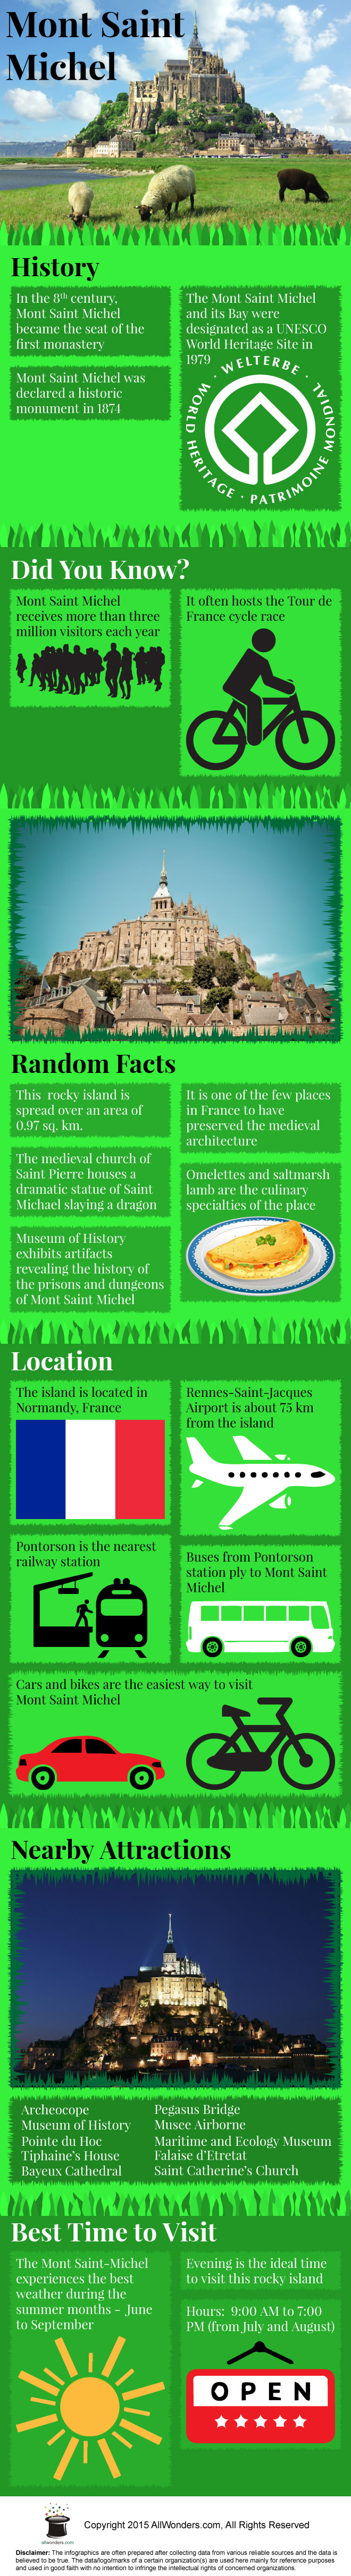 Mont Saint-Michel Infographic